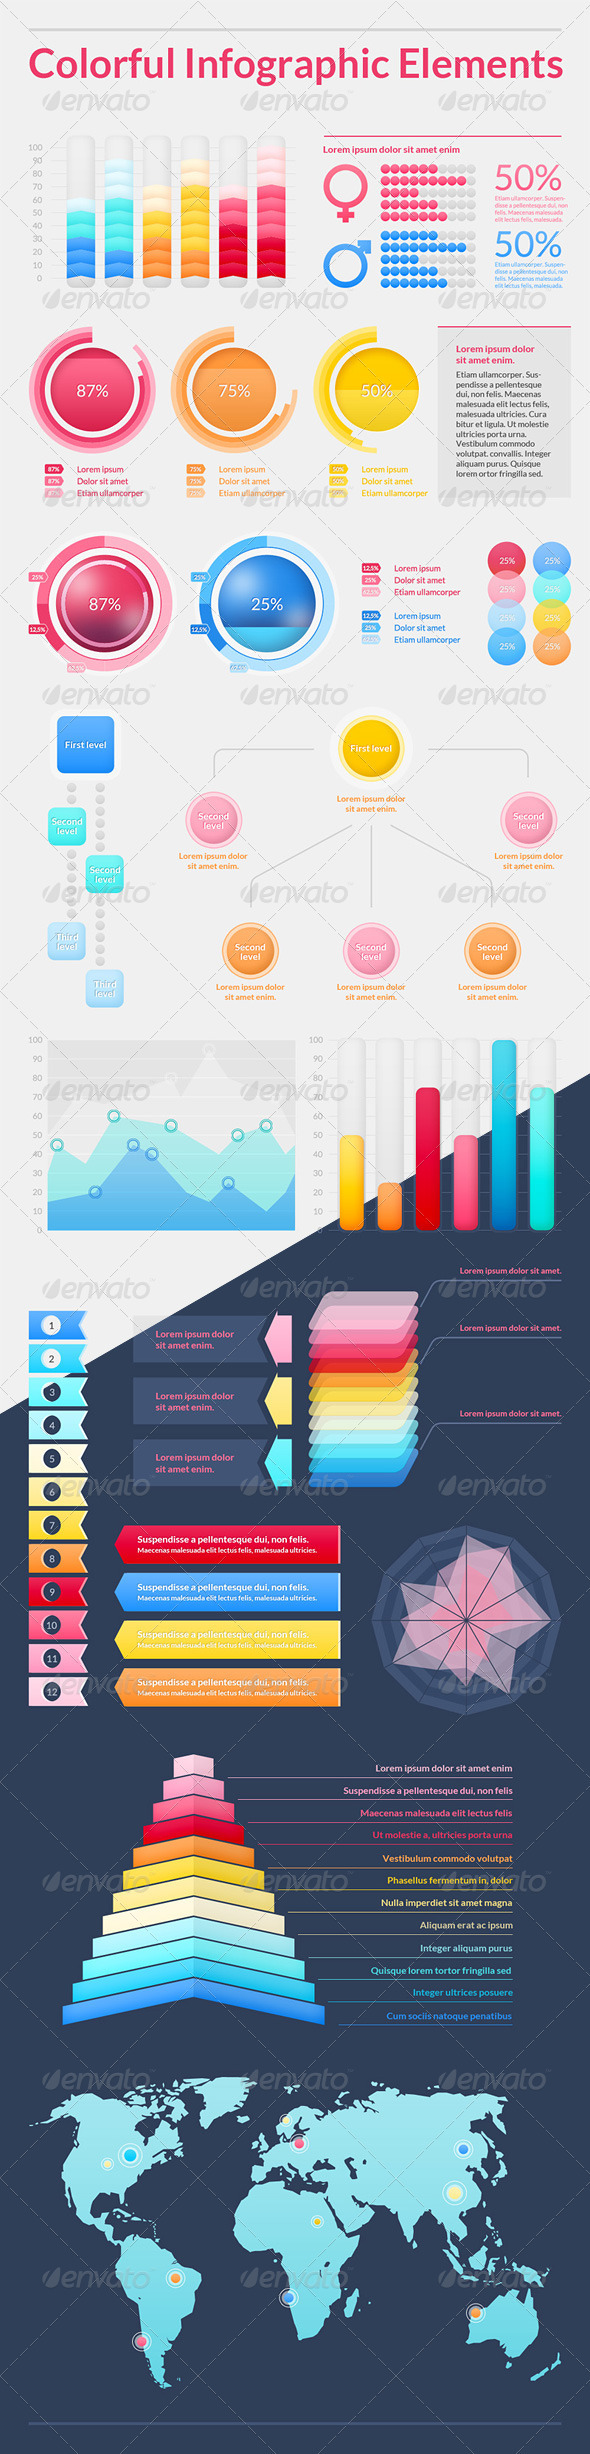 Colorful Infographic Elements - Infographics